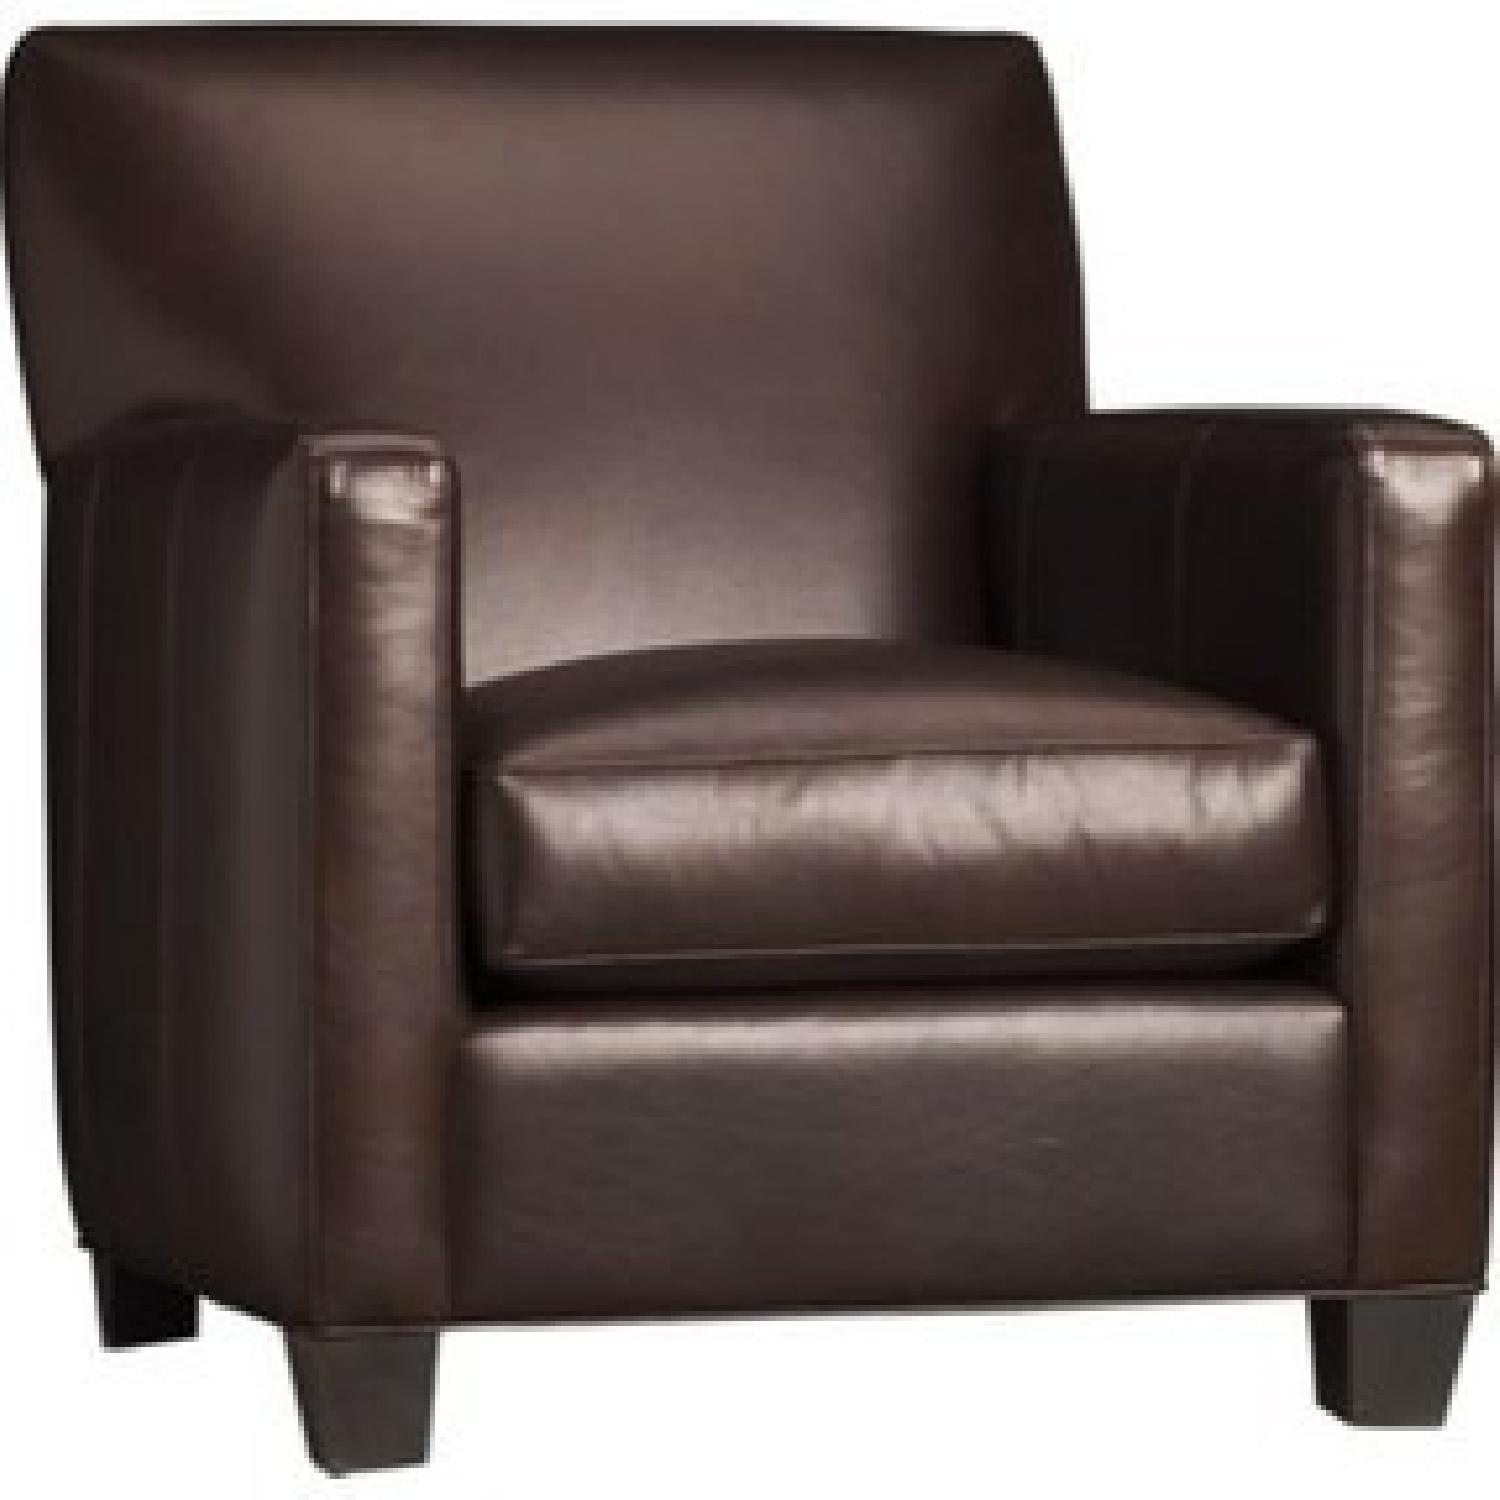 Crate & Barrel Leather Club Chair - image-0